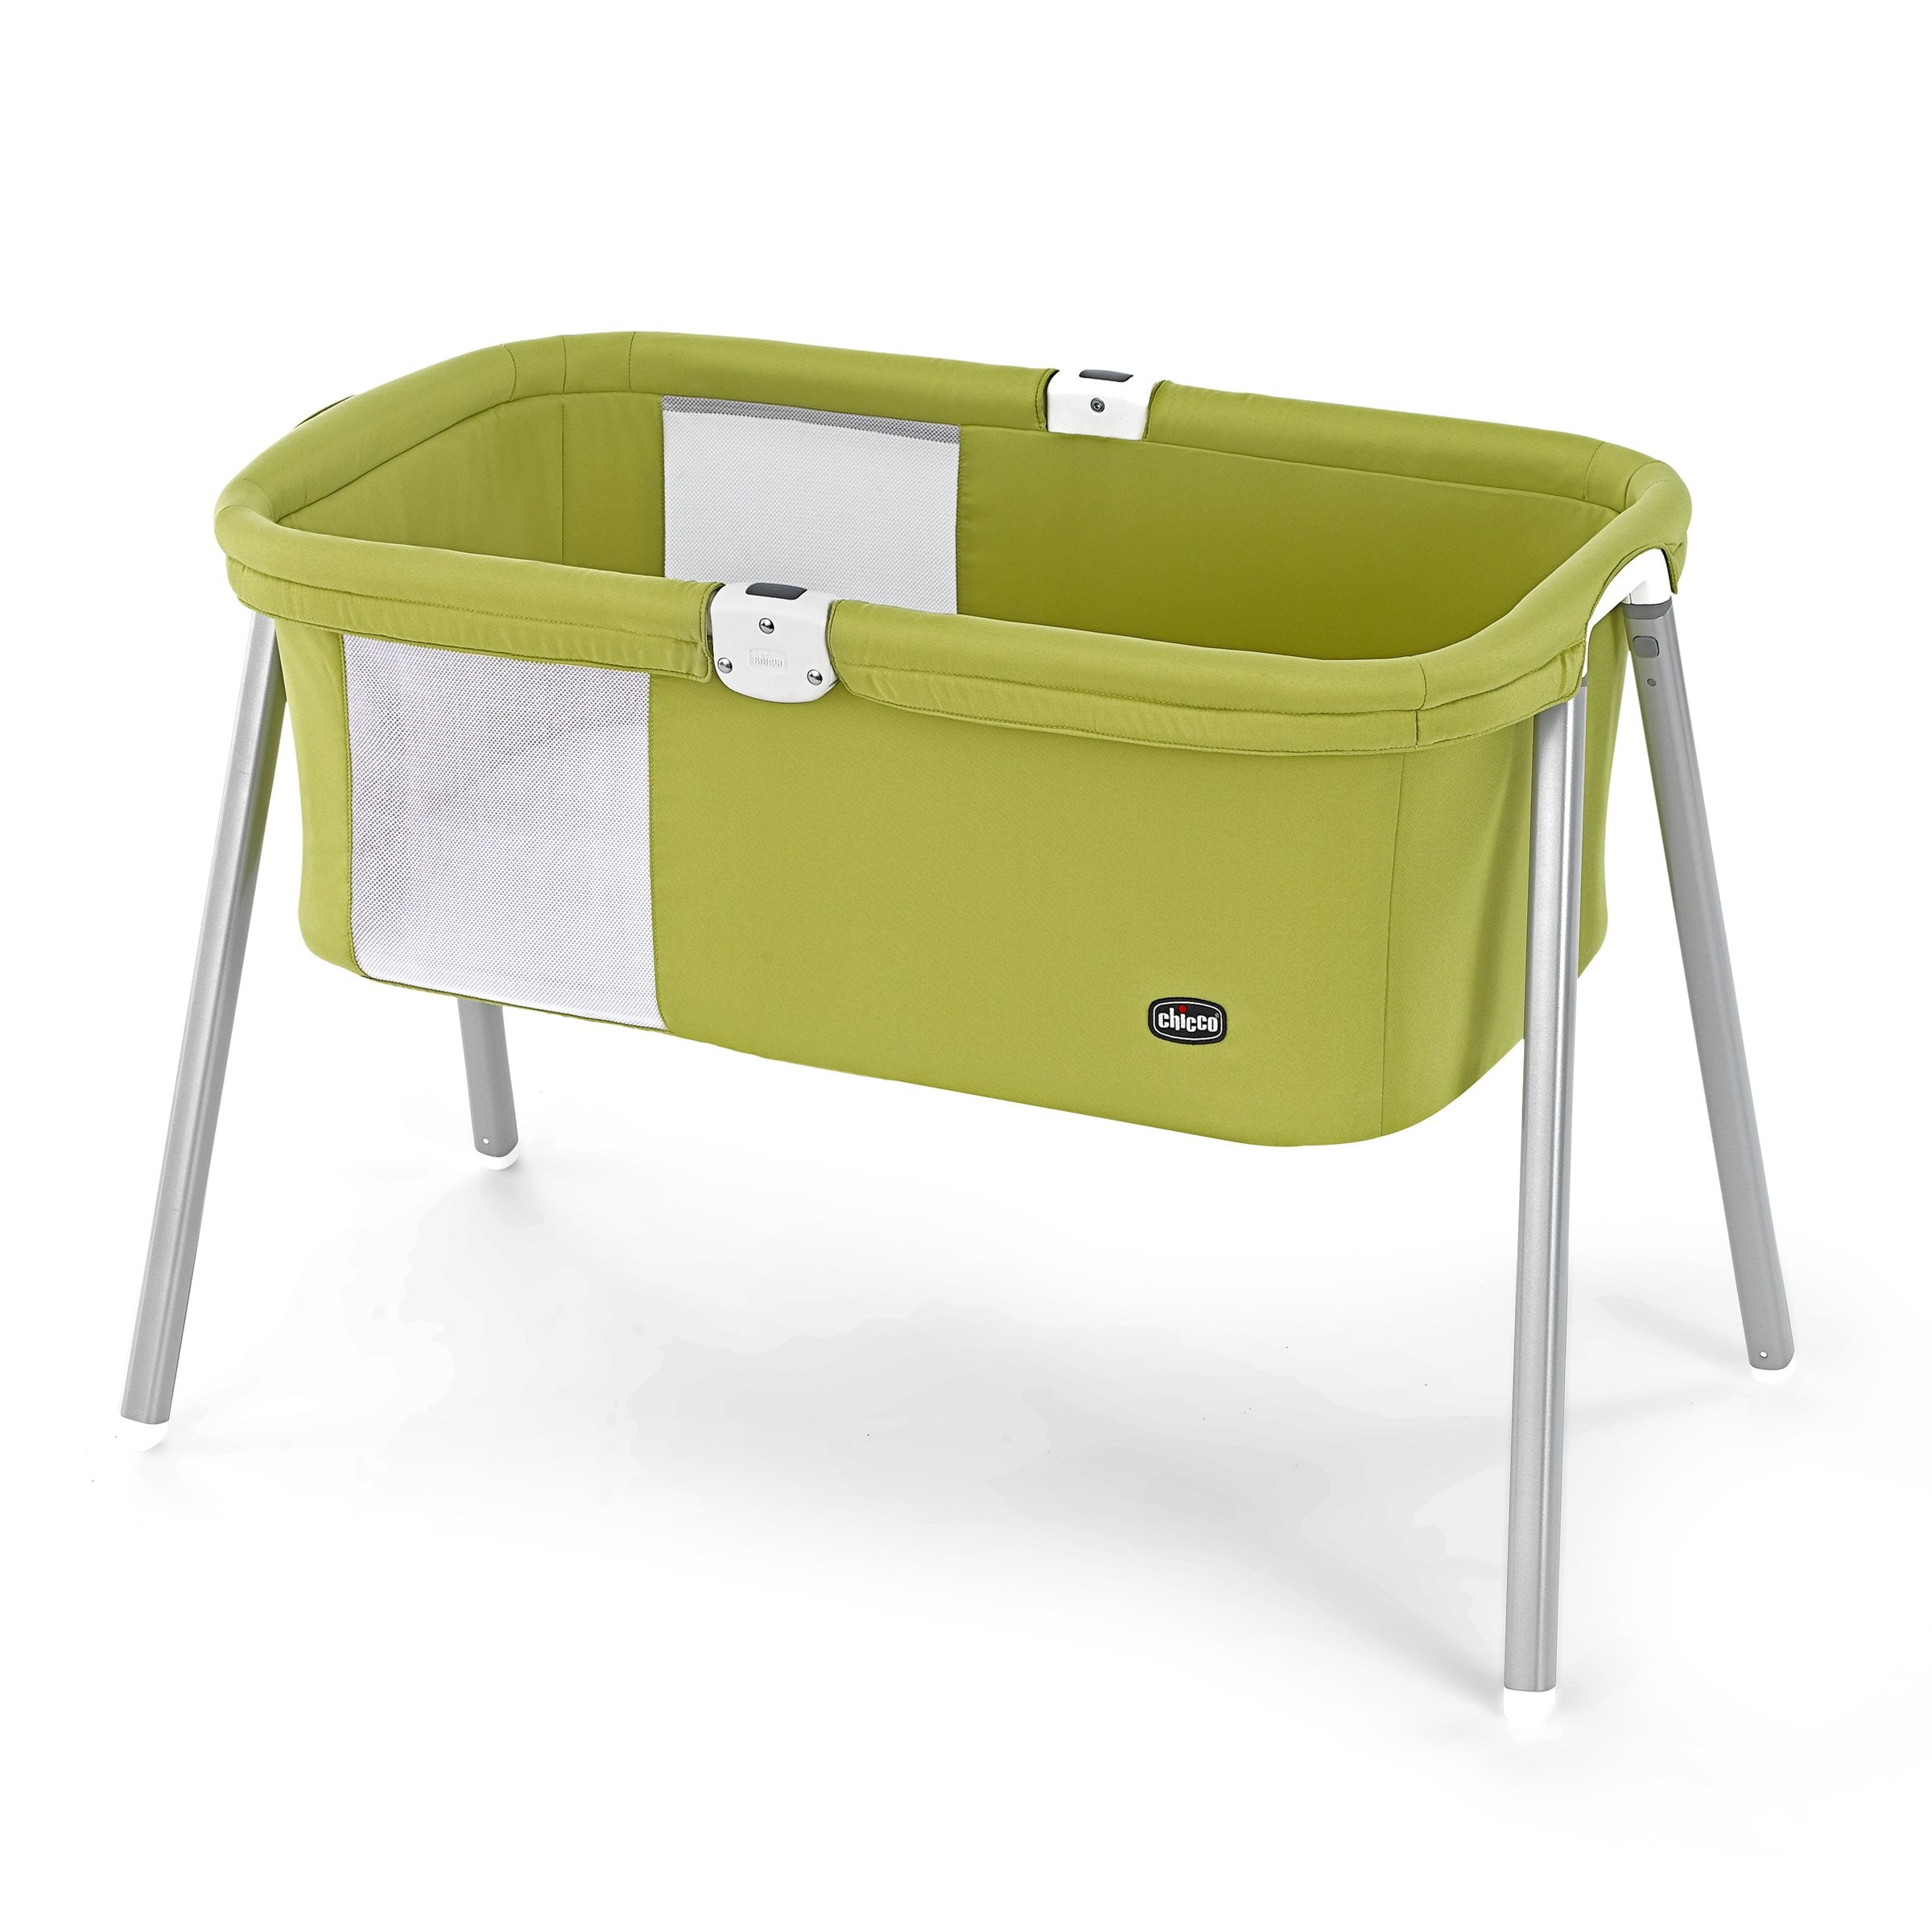 8 Clever U0026 Safe Travel Cribs That Make Nap Time Portable